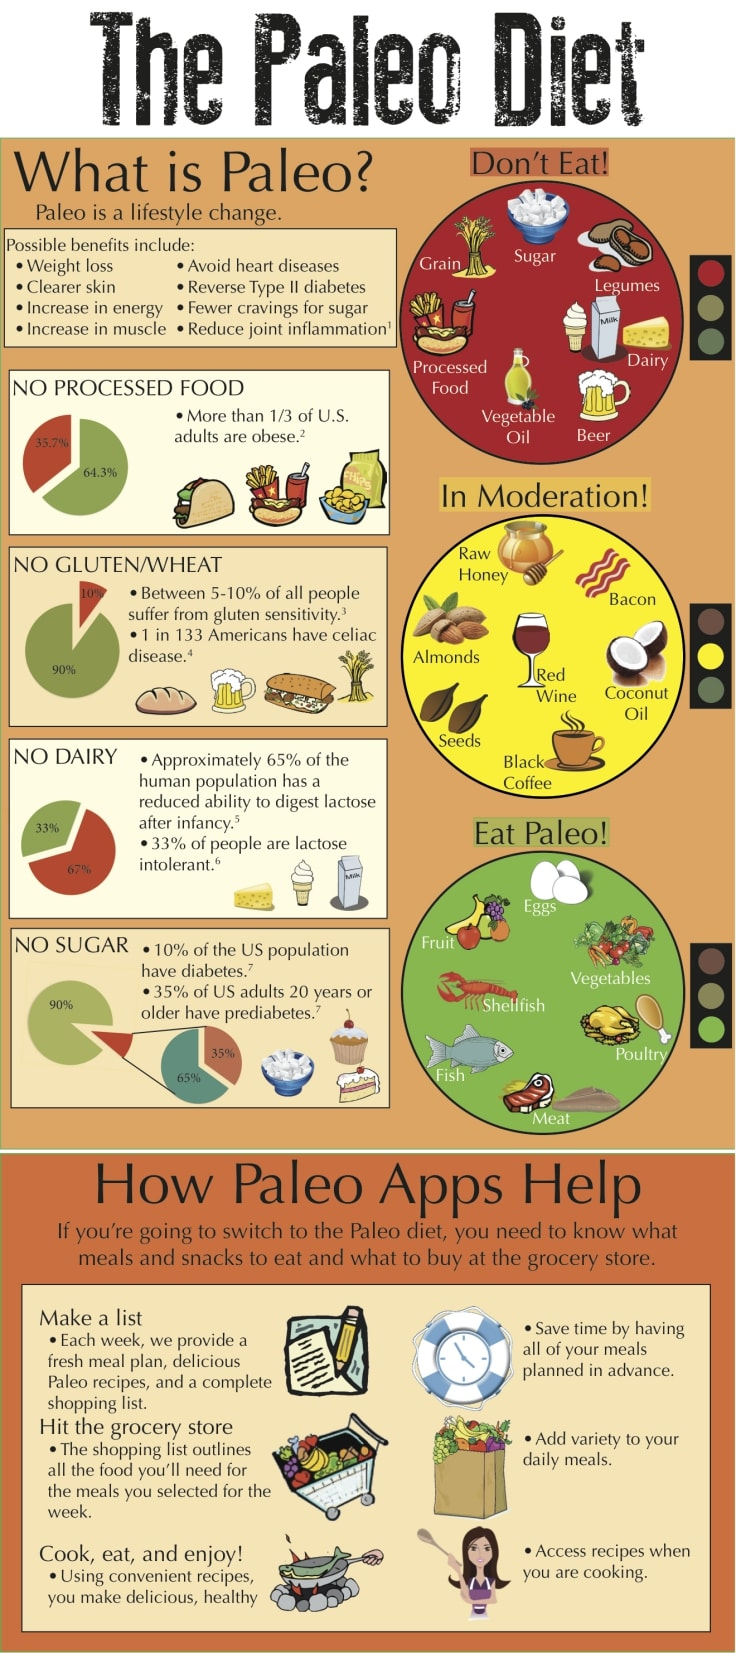 Best Diet Plans - Paleo Diet Infographic